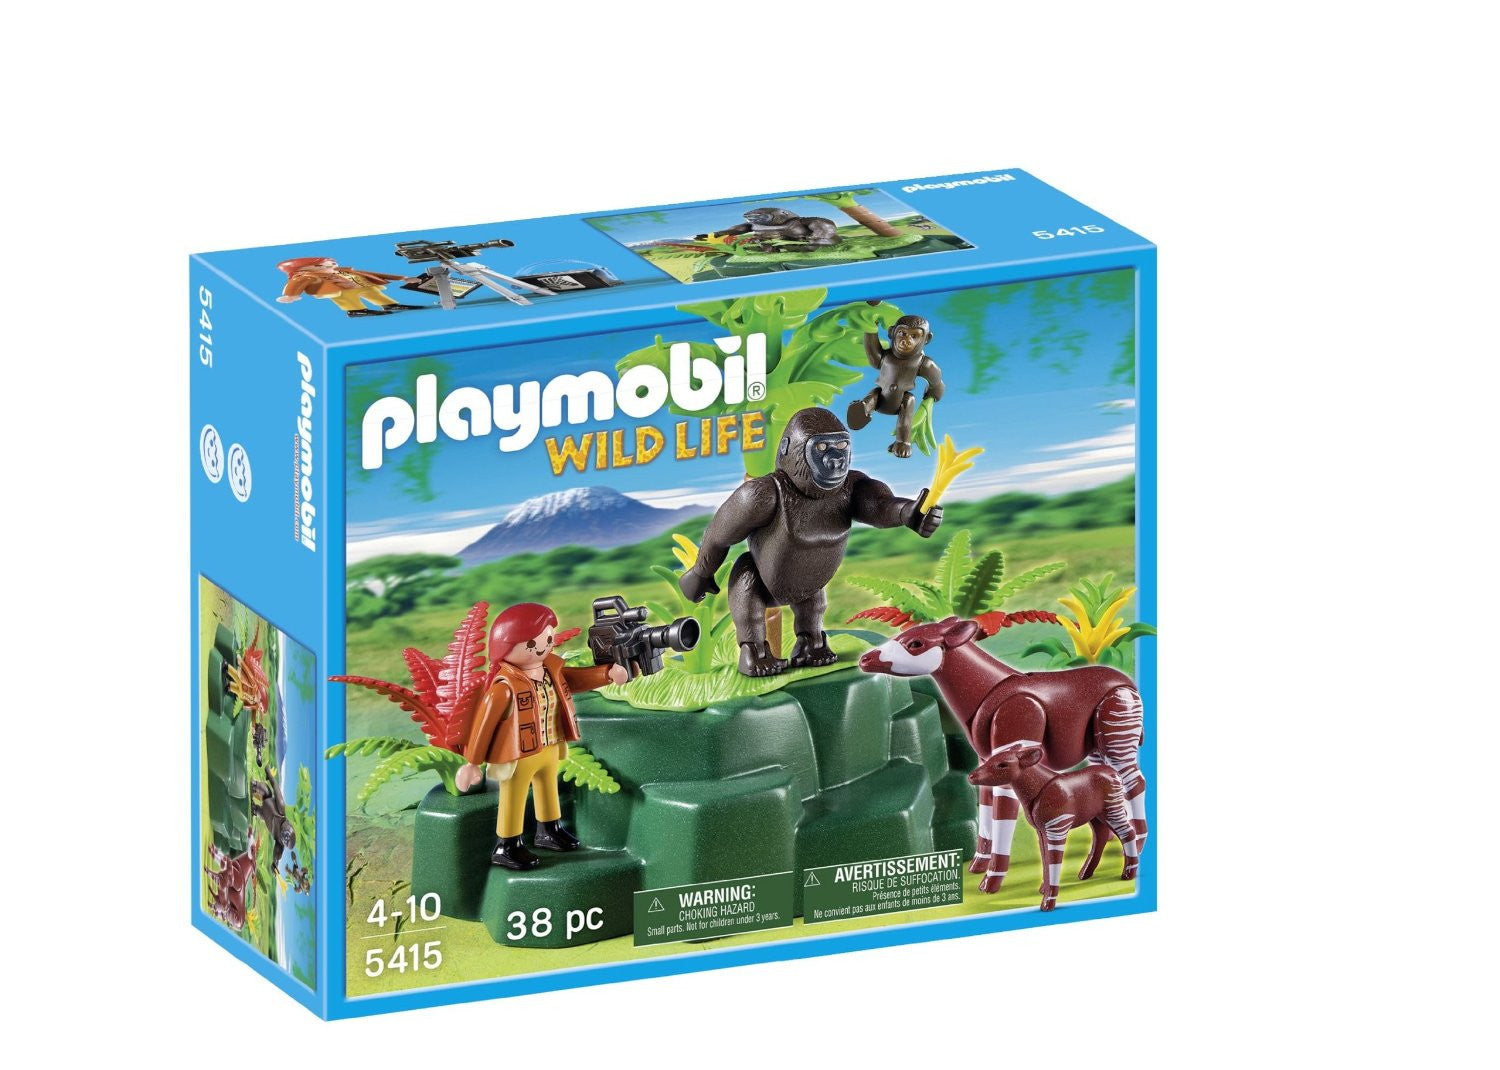 Playmobil 5415 Wild Life Gorillas and Okapis - Wild Willy